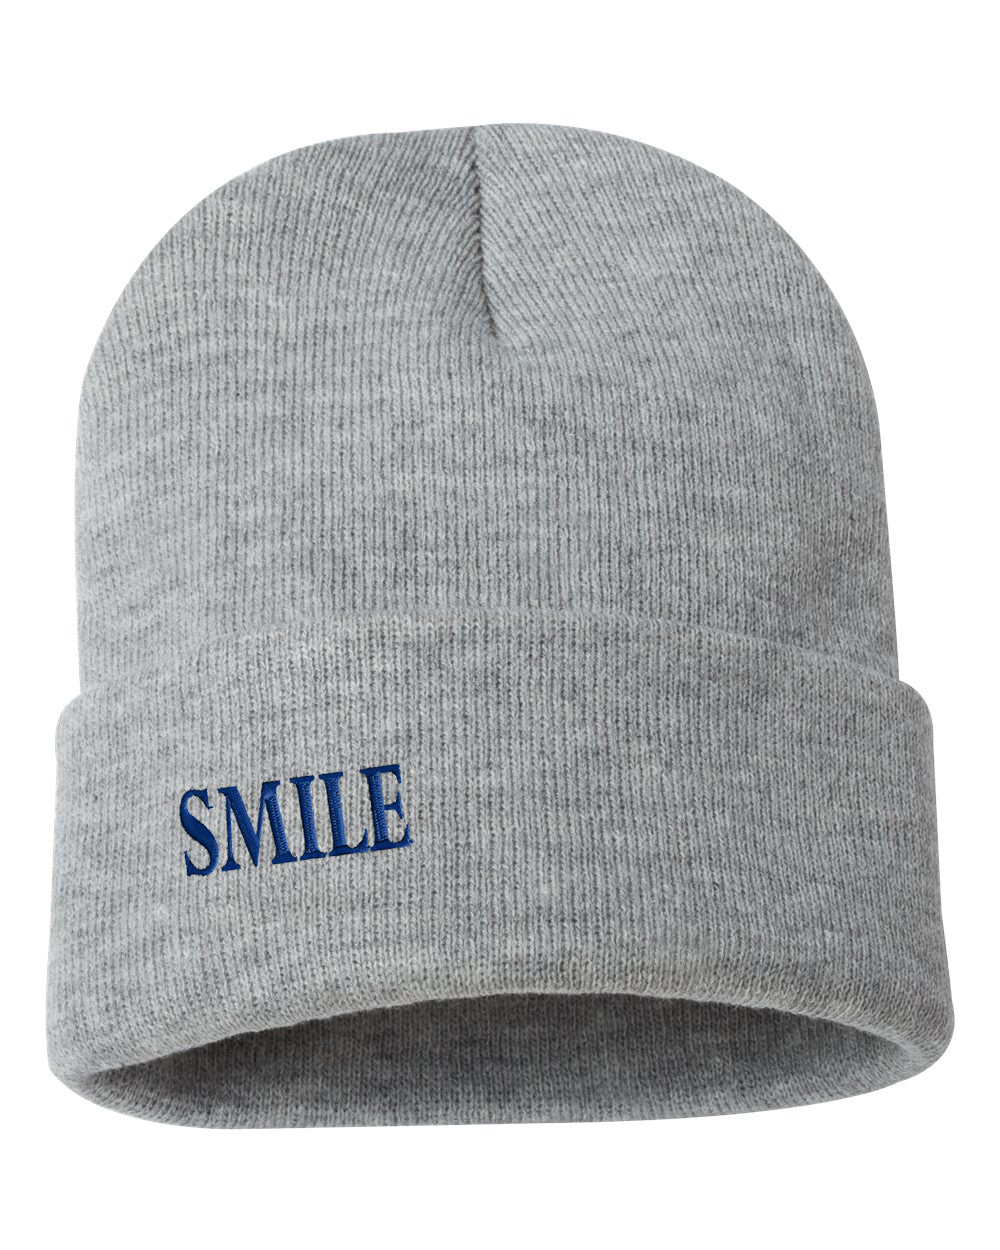 "SMILE Embroidered Ribbed 12"" Inch Acrylic Knit Beanie"